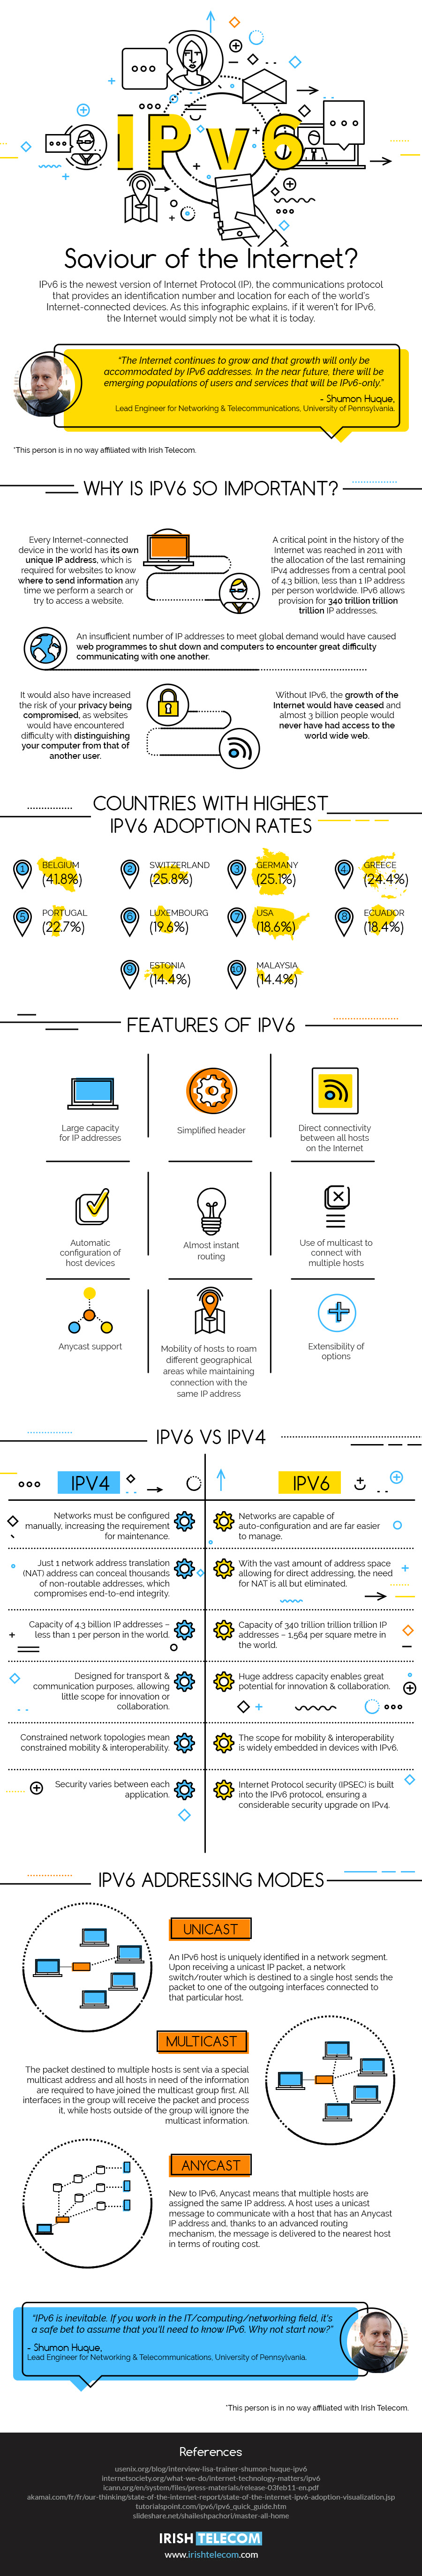 IPv6 Importance, Features and IPv4 vs IPv6 Difference [Infographic]